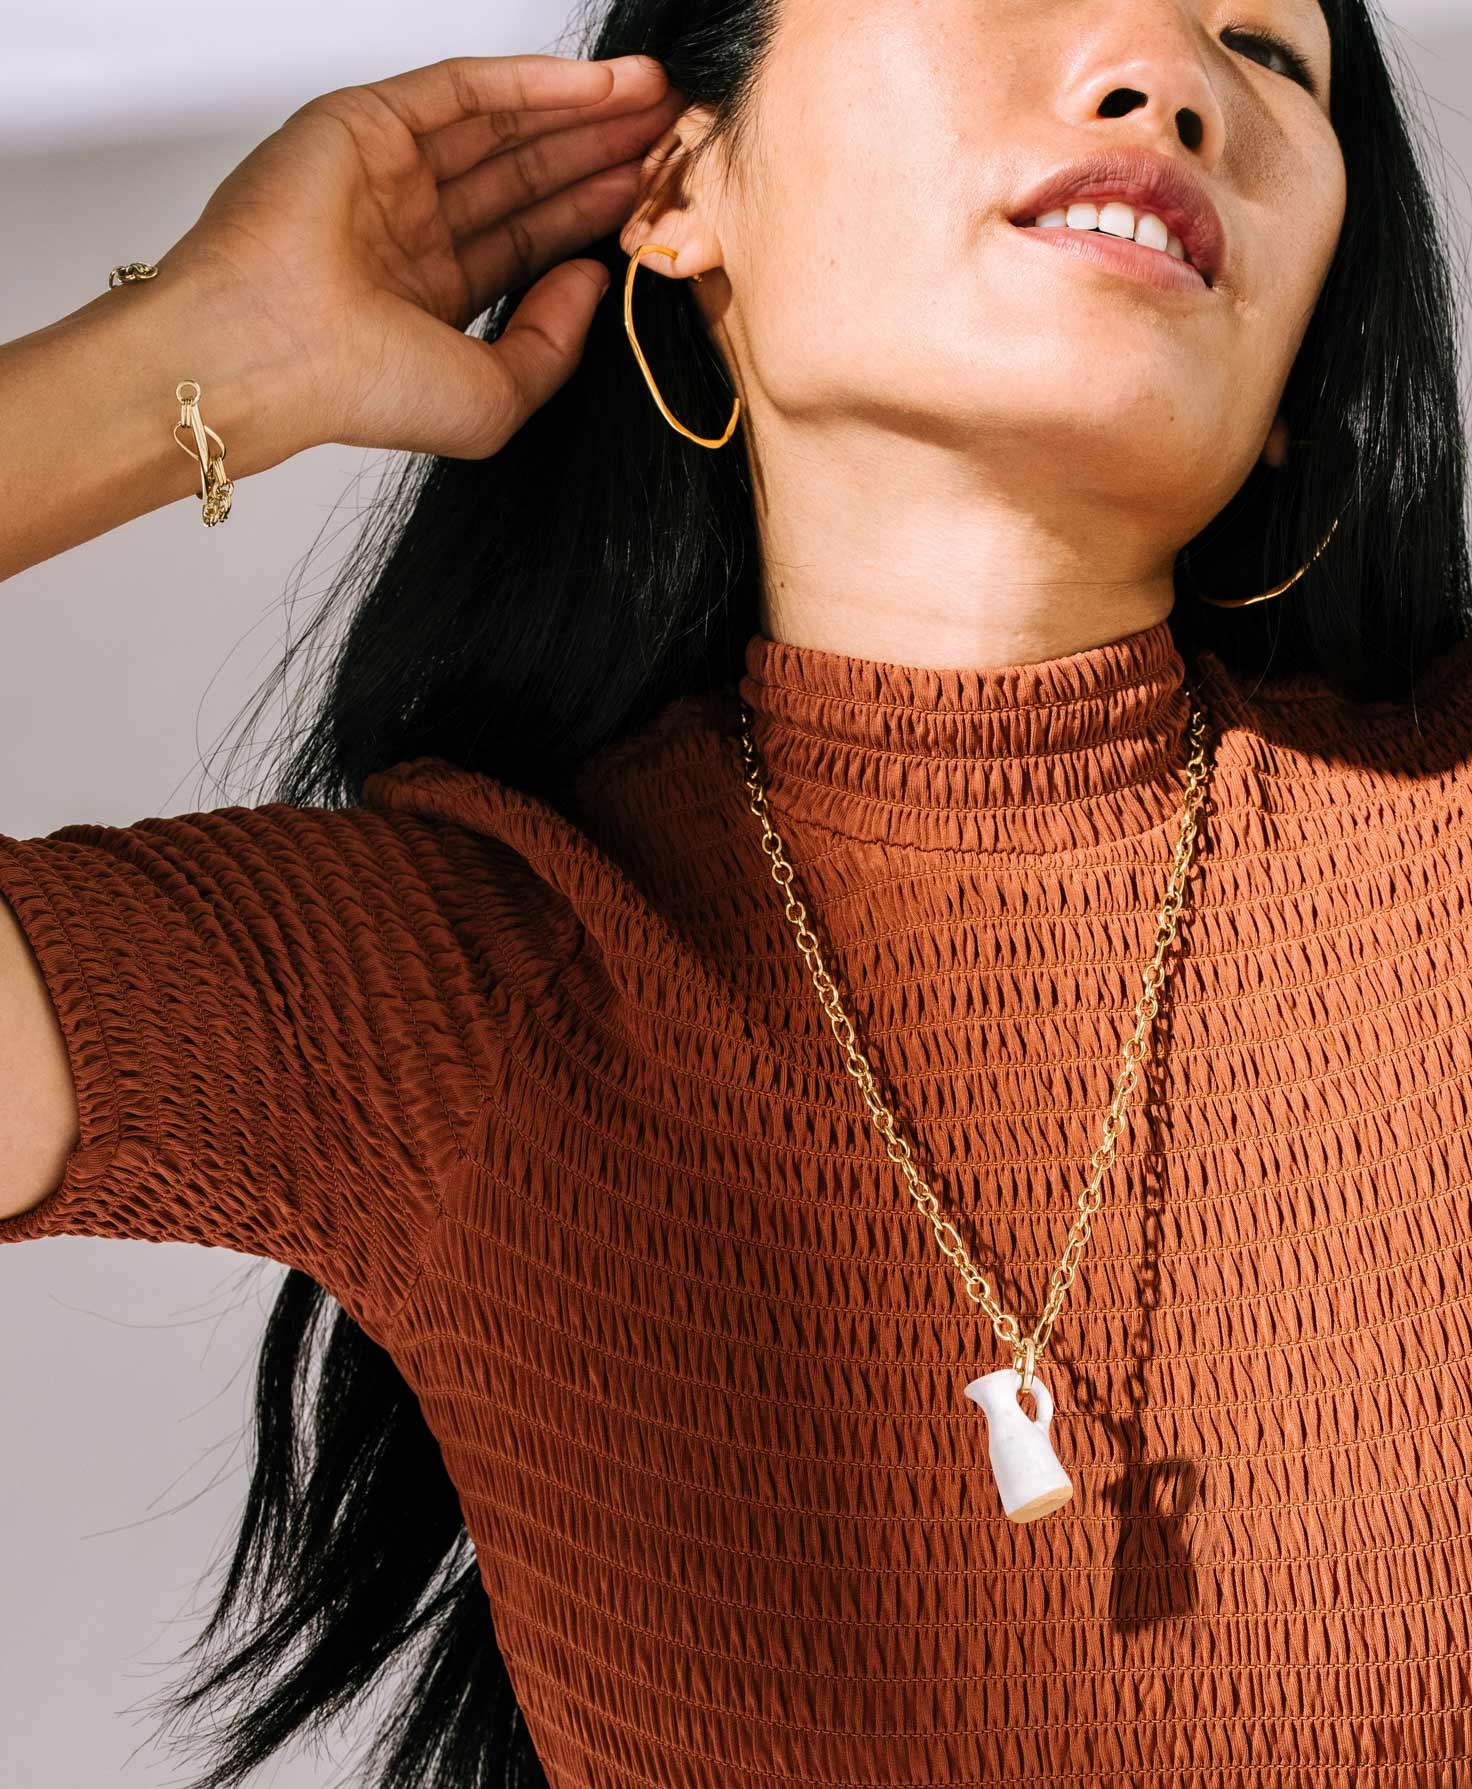 A model wears the Shindig Bracelet. It shines as it catches the light. She also wears the Signal Hoops and Petite Pitcher Necklace, which share the bracelet's neutral gold color palette.